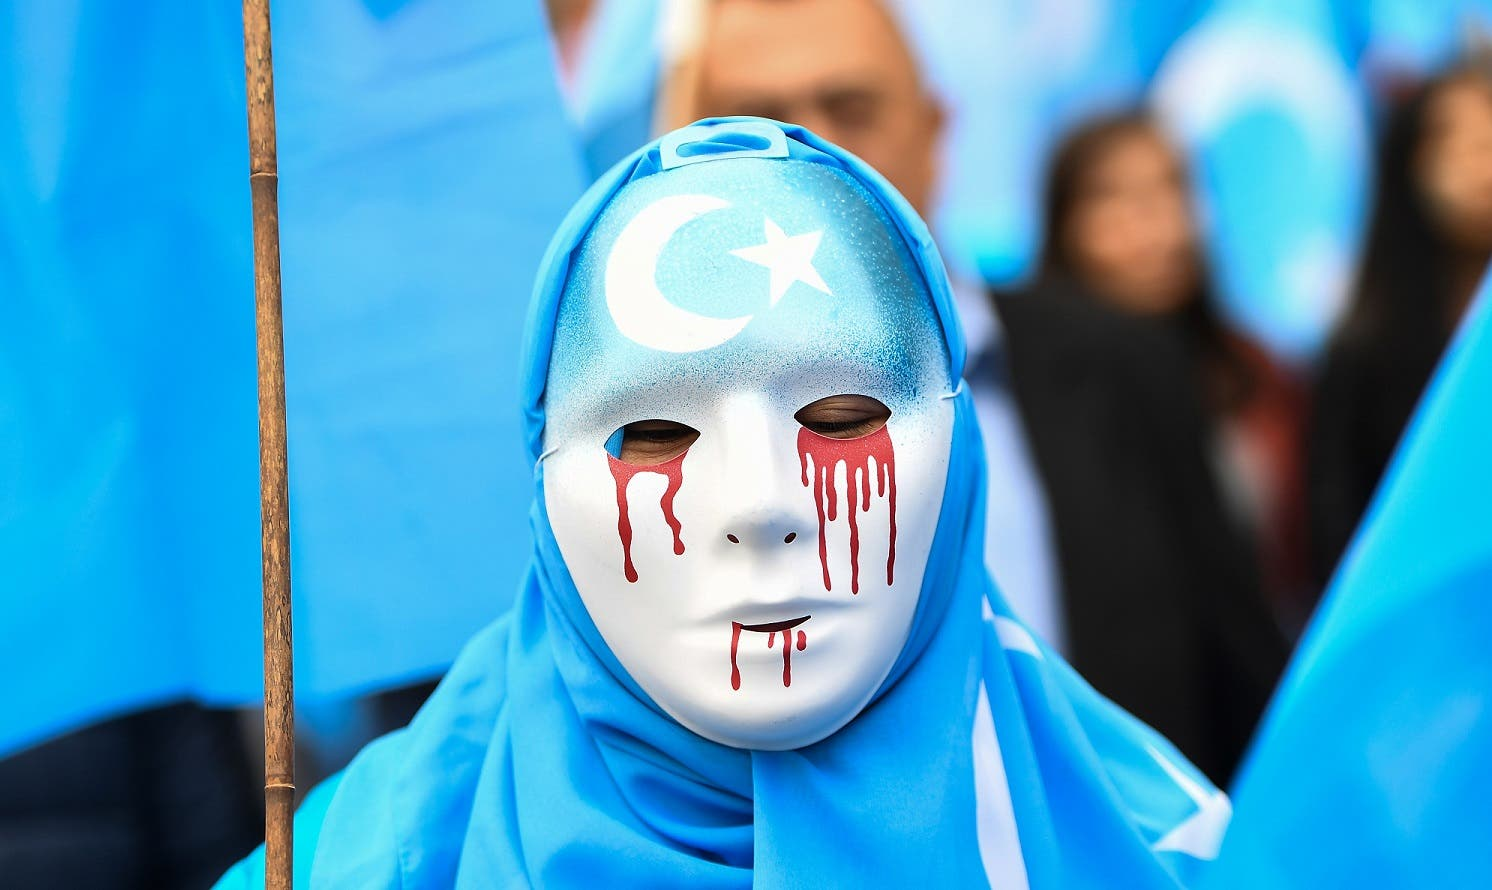 A person wearing a white mask with tears of blood takes part in a protest march in Brussels in support of ethnic Uighurs. (AFP)